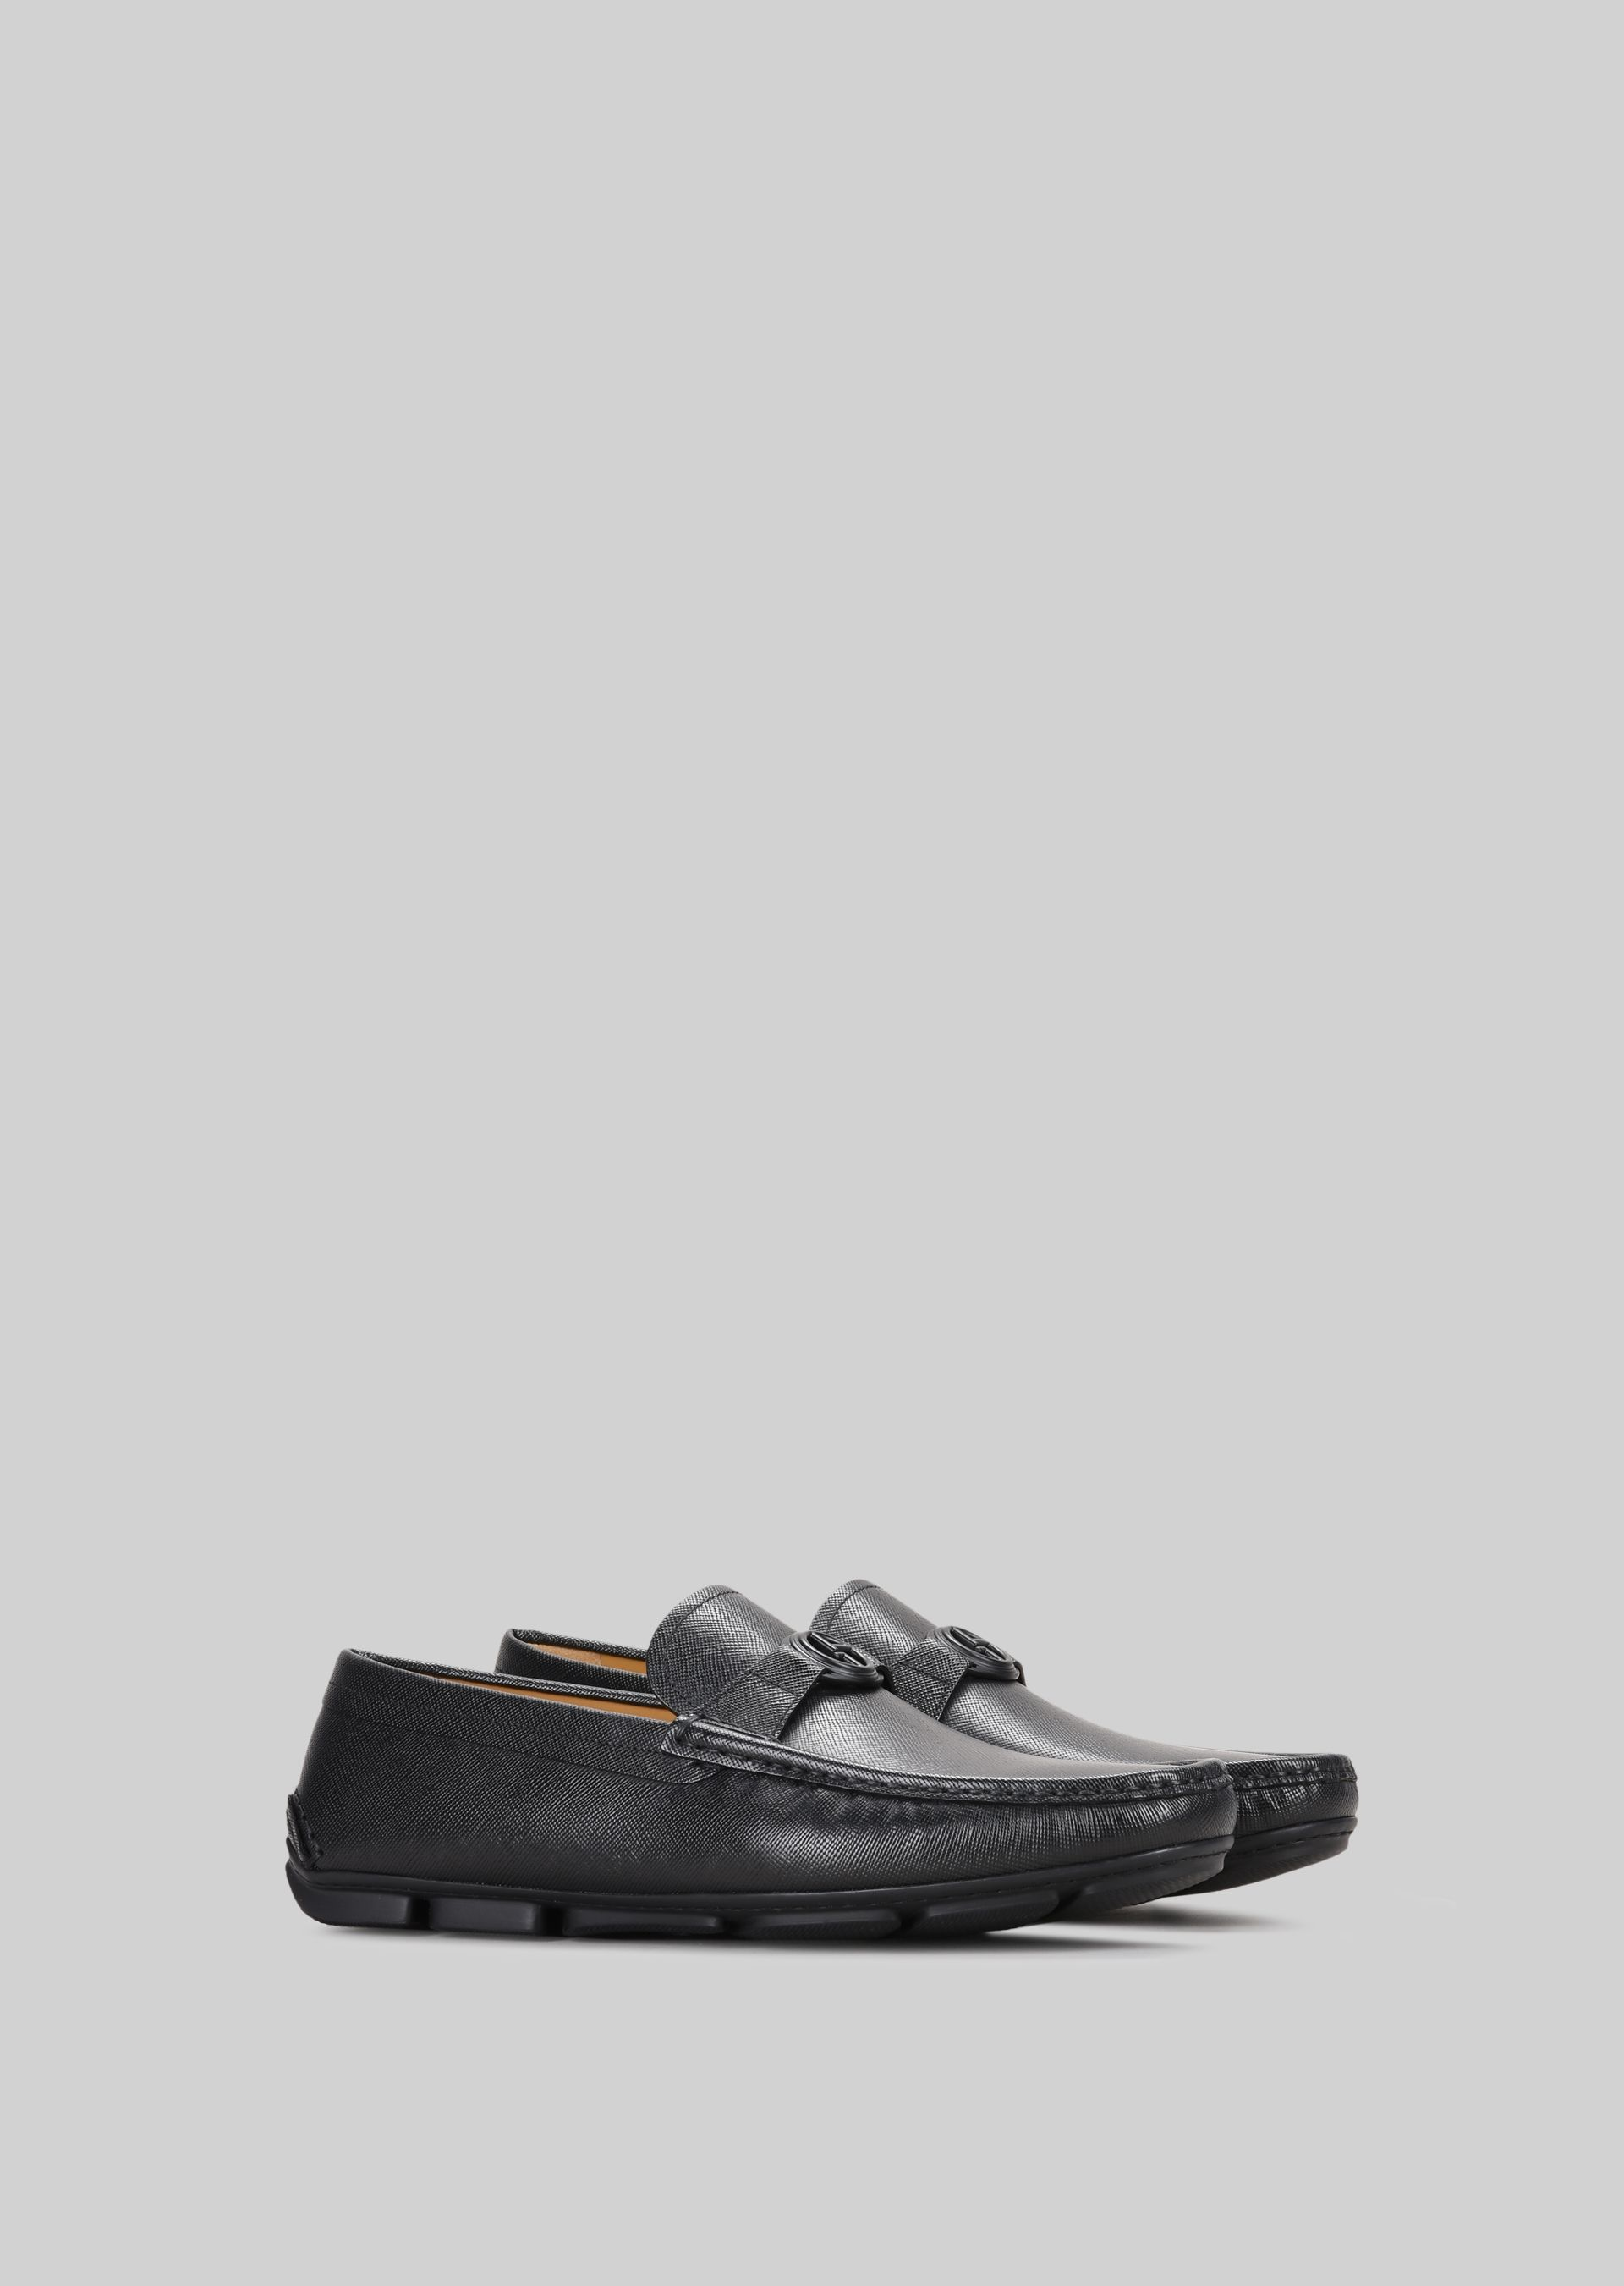 GIORGIO ARMANI LEATHER DRIVING LOAFERS Driving Shoes U r